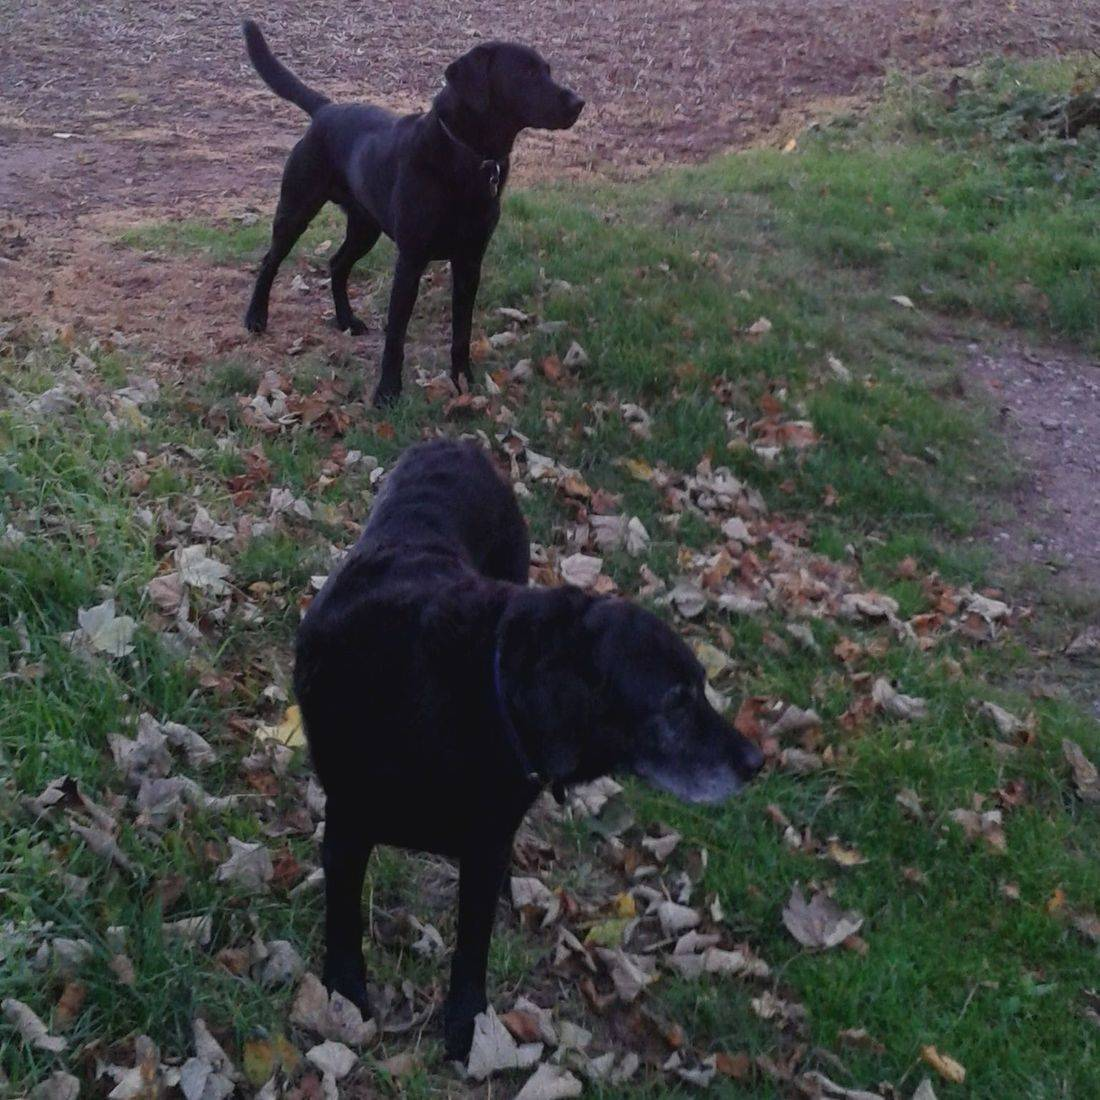 Two black labradors in a field